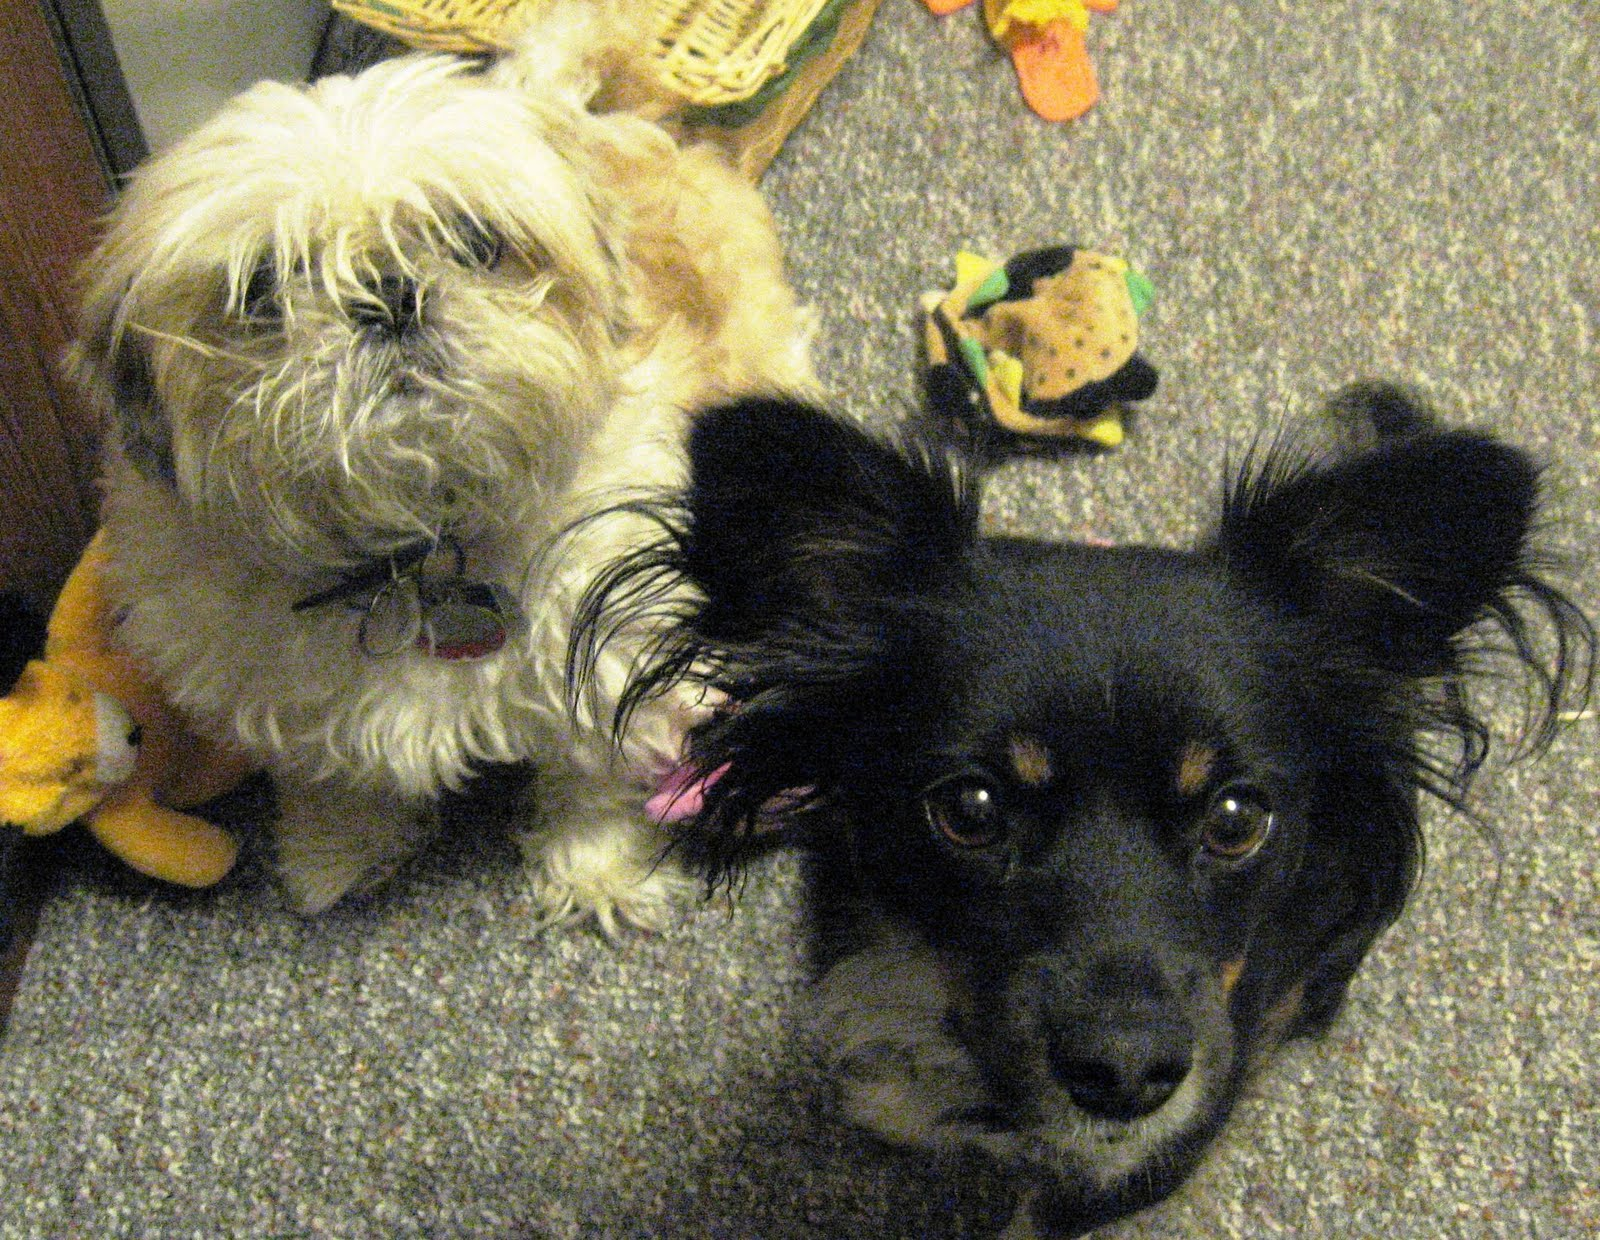 Casey & Taco - What did we do wrong, Mommy?. Photo by Carley. All copyrights reserved